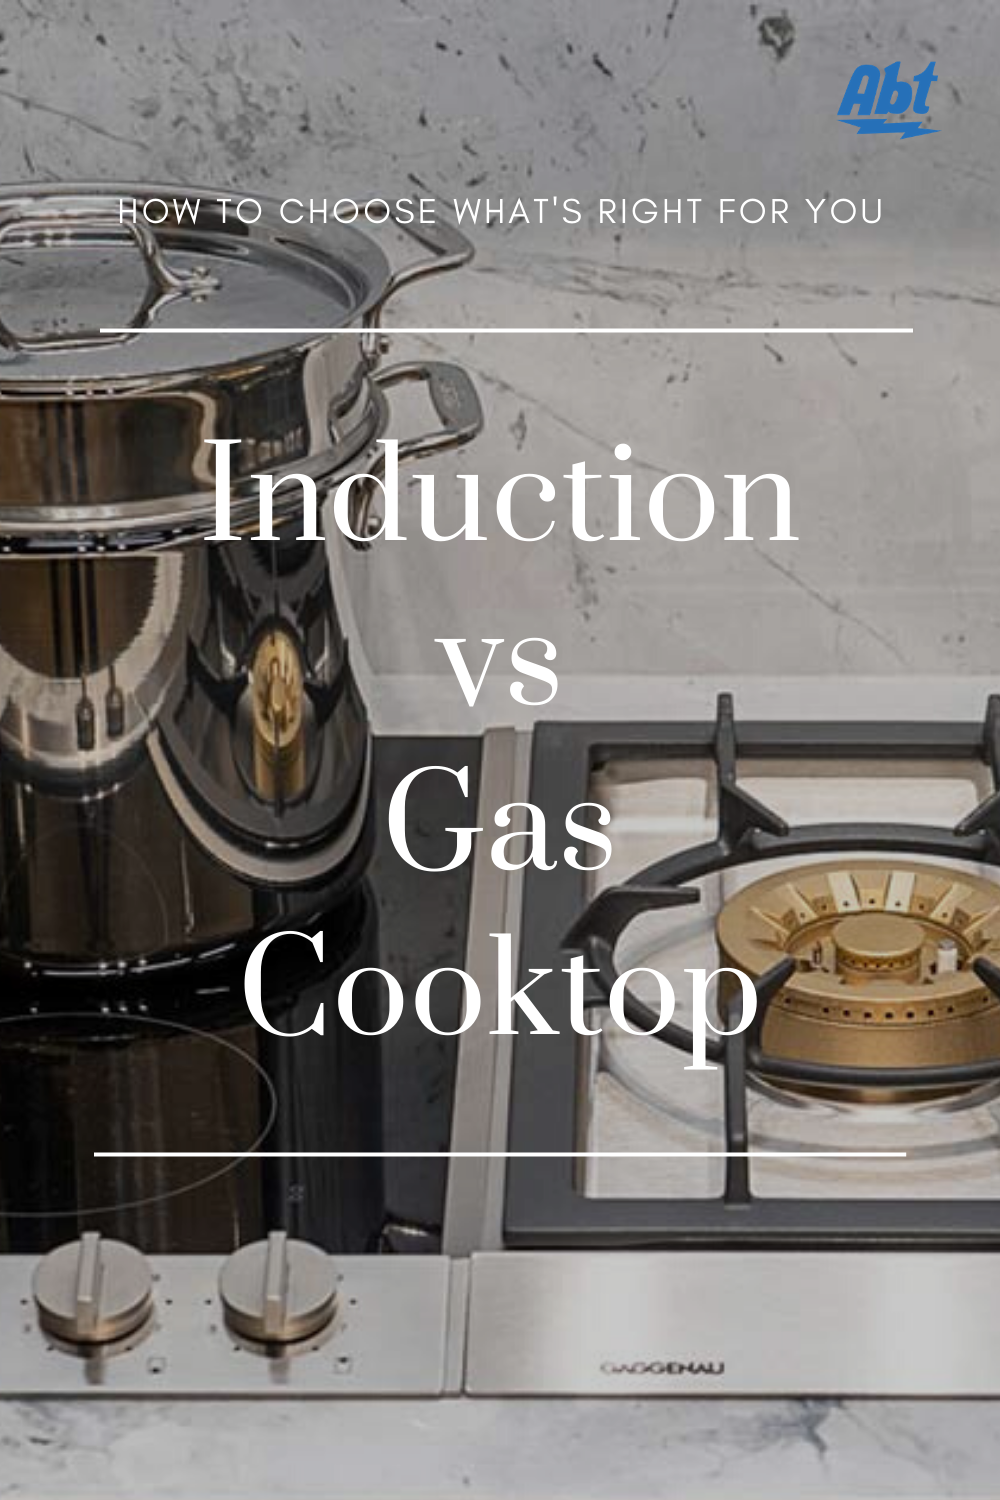 Induction Cooktop Vs Gas In 2020 Induction Cooktop Cooktop Gas Cooktop